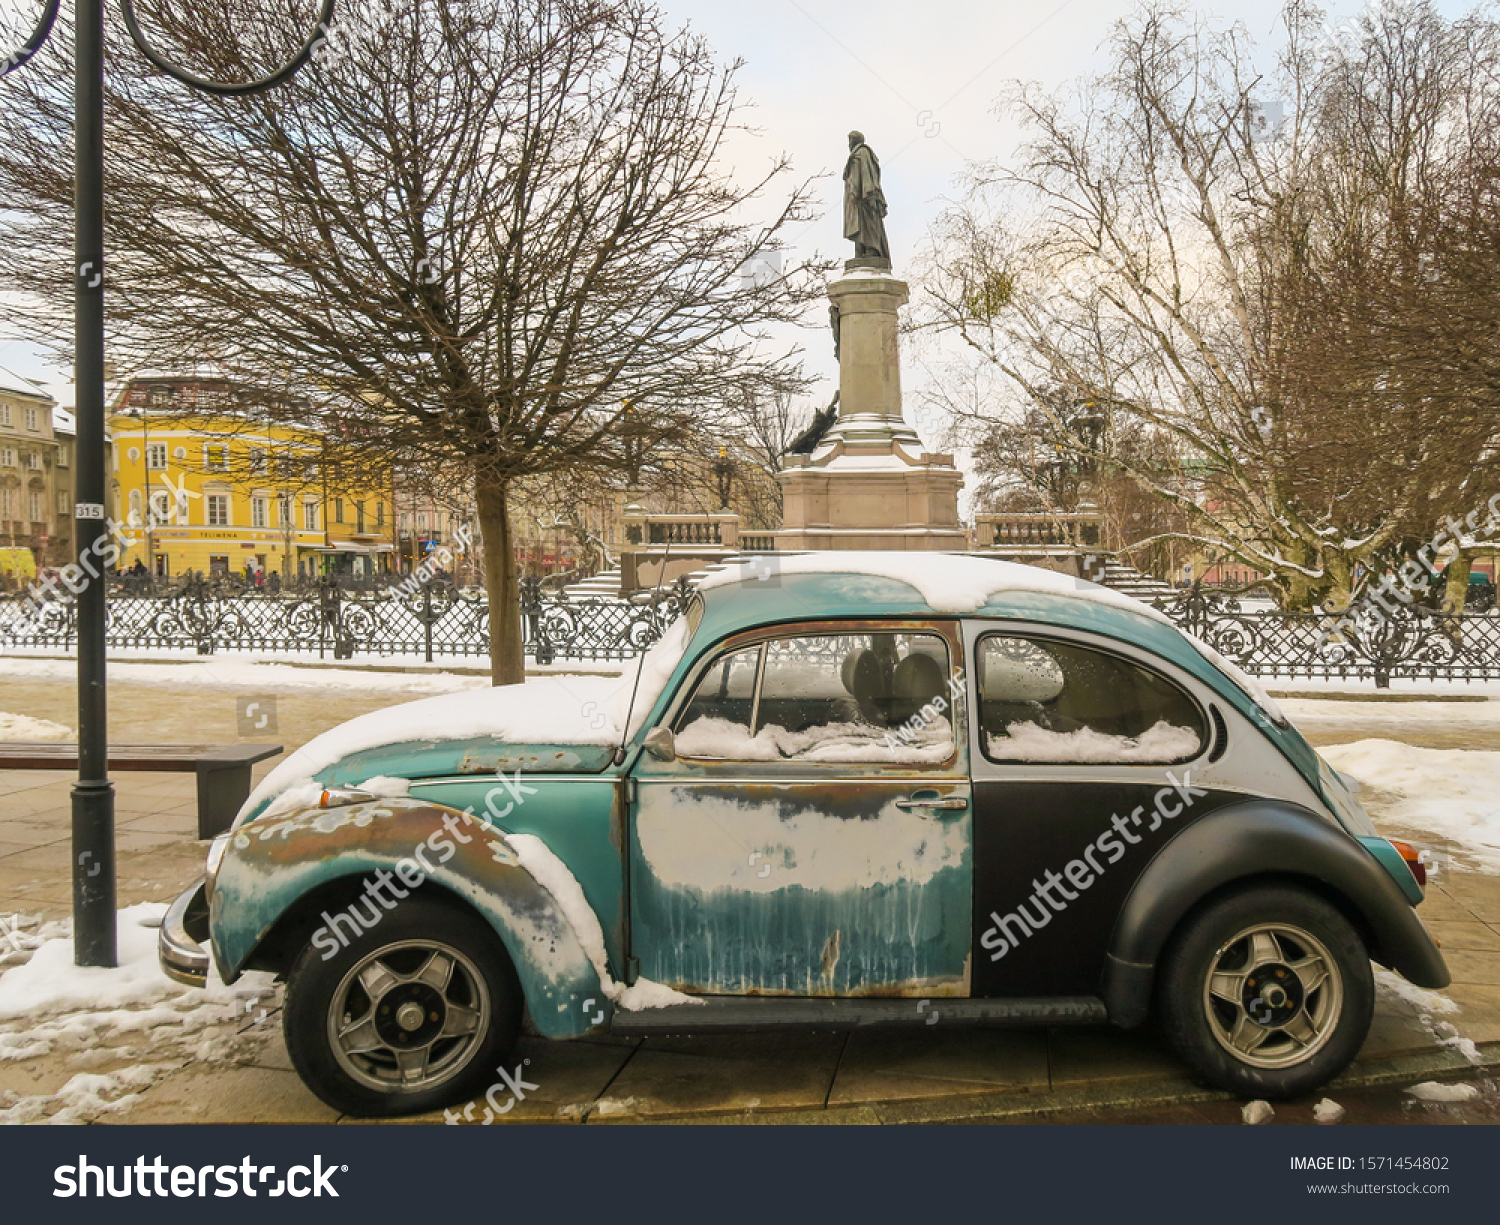 stock-photo-warsaw-poland-january-rusty-